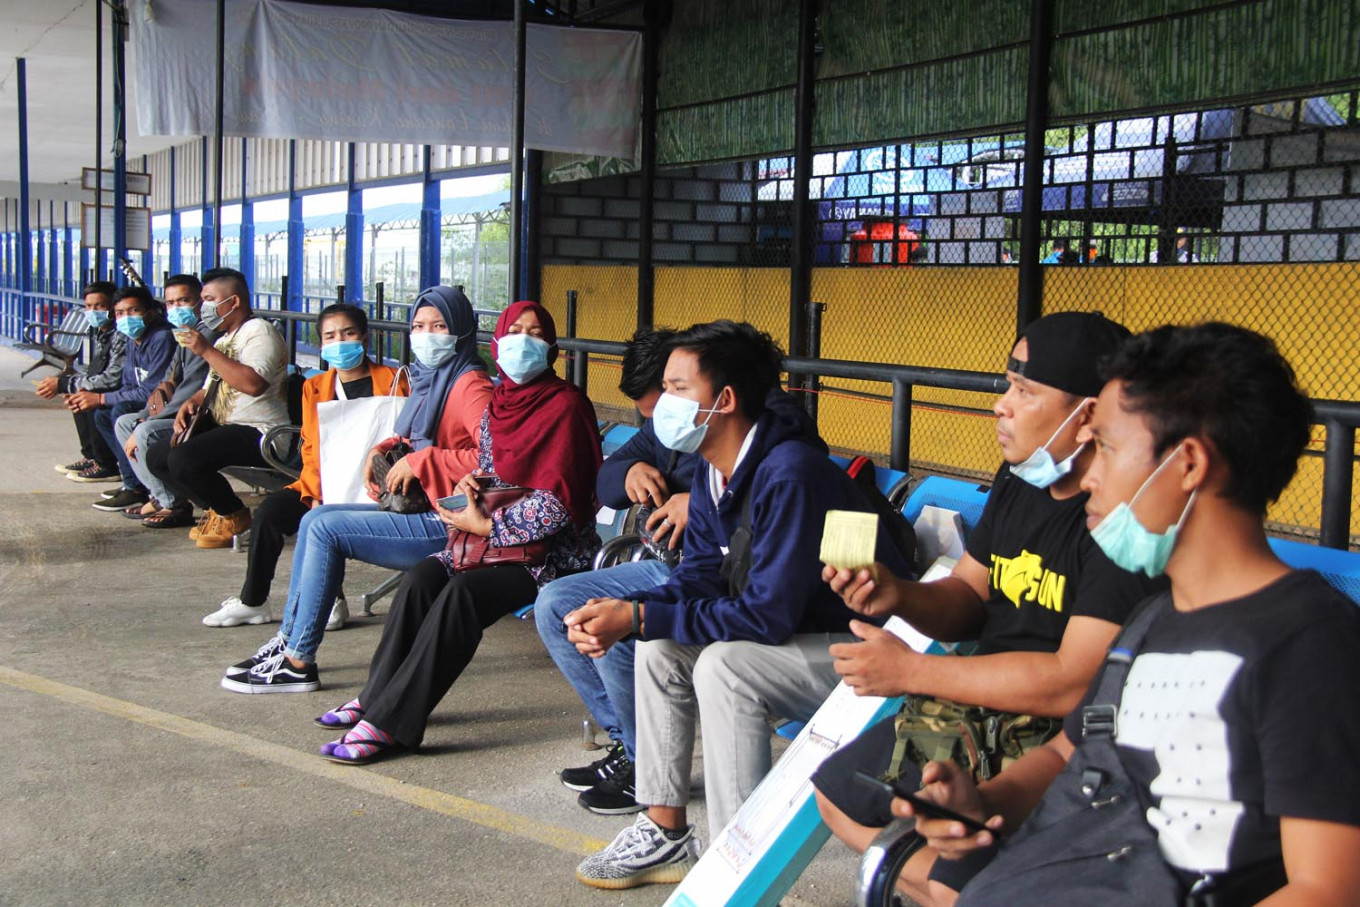 More than 100,000 citizens return to Indonesia, 591 test positive for COVID-19